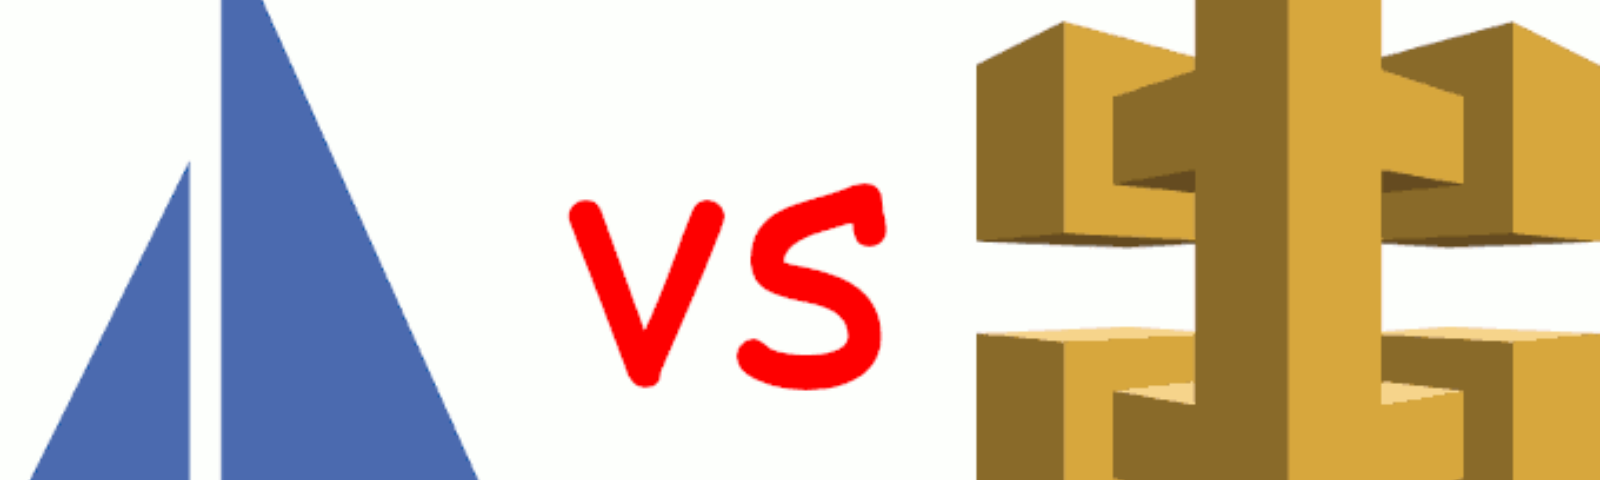 Istio logo representing service meshes in general vs. AWS' API gateway logo representing API gateways in general.